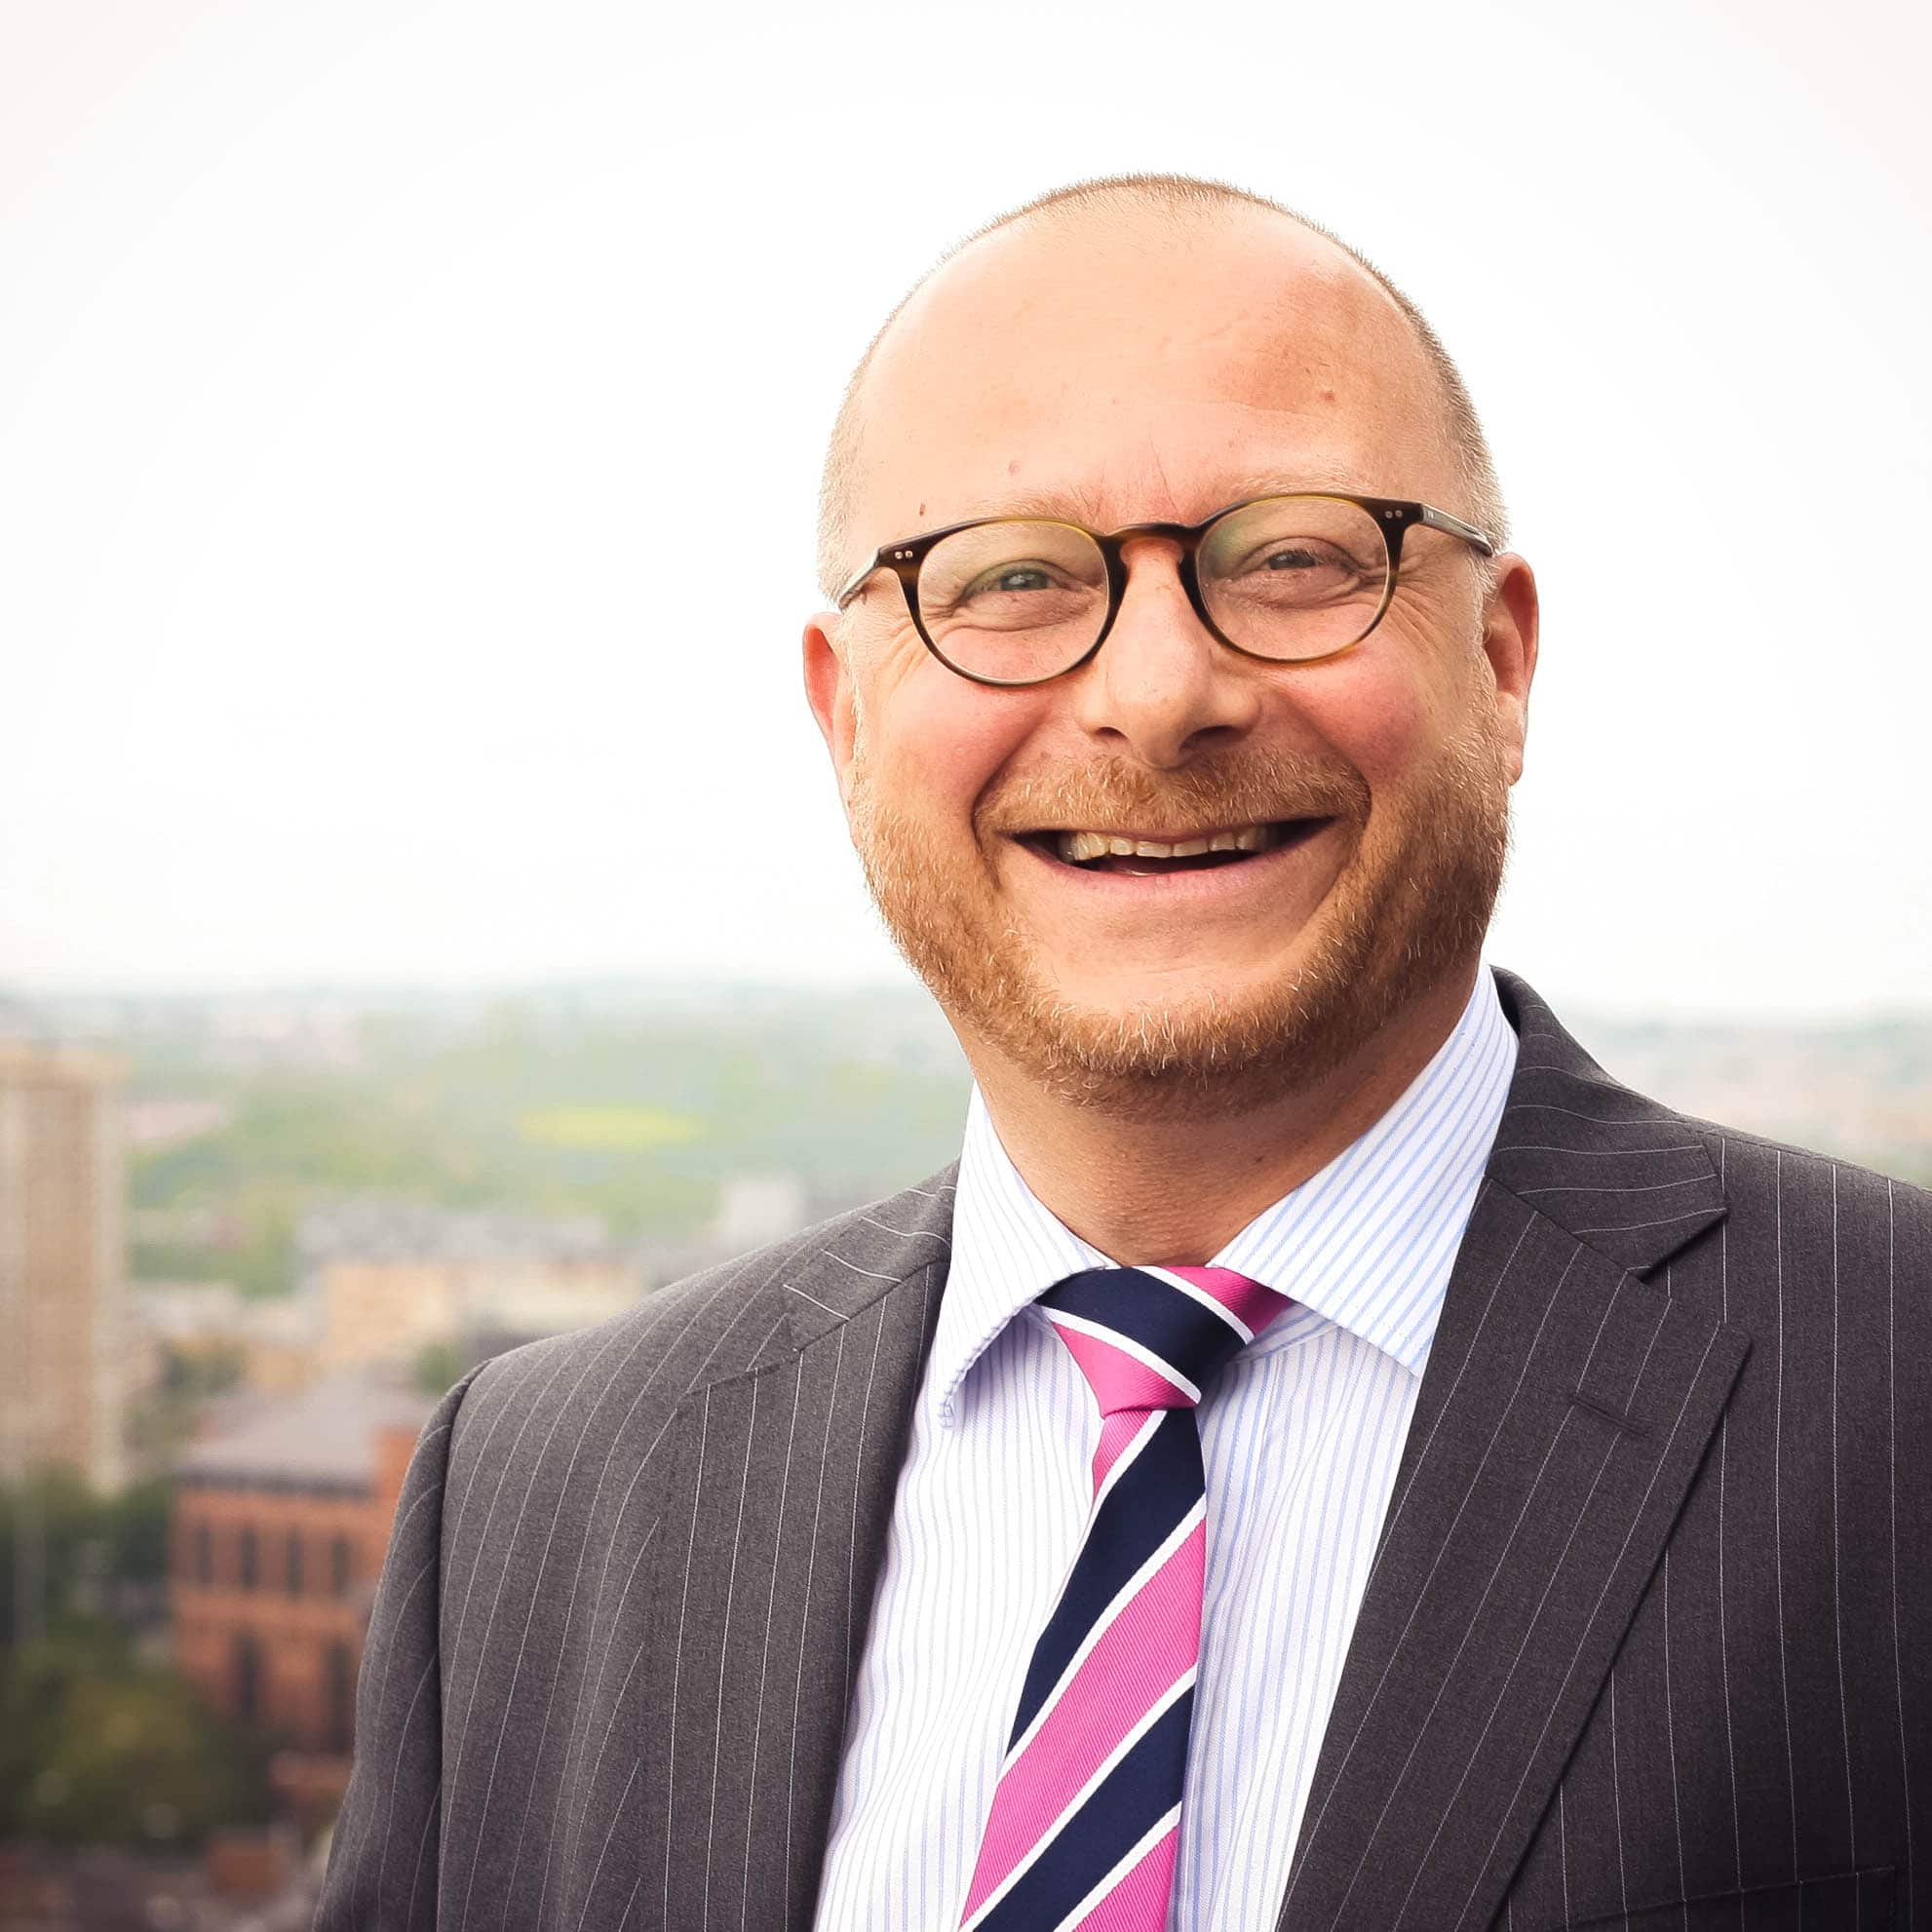 Business Live Feature: Paul Morris, Development Director, St James Securities Ltd